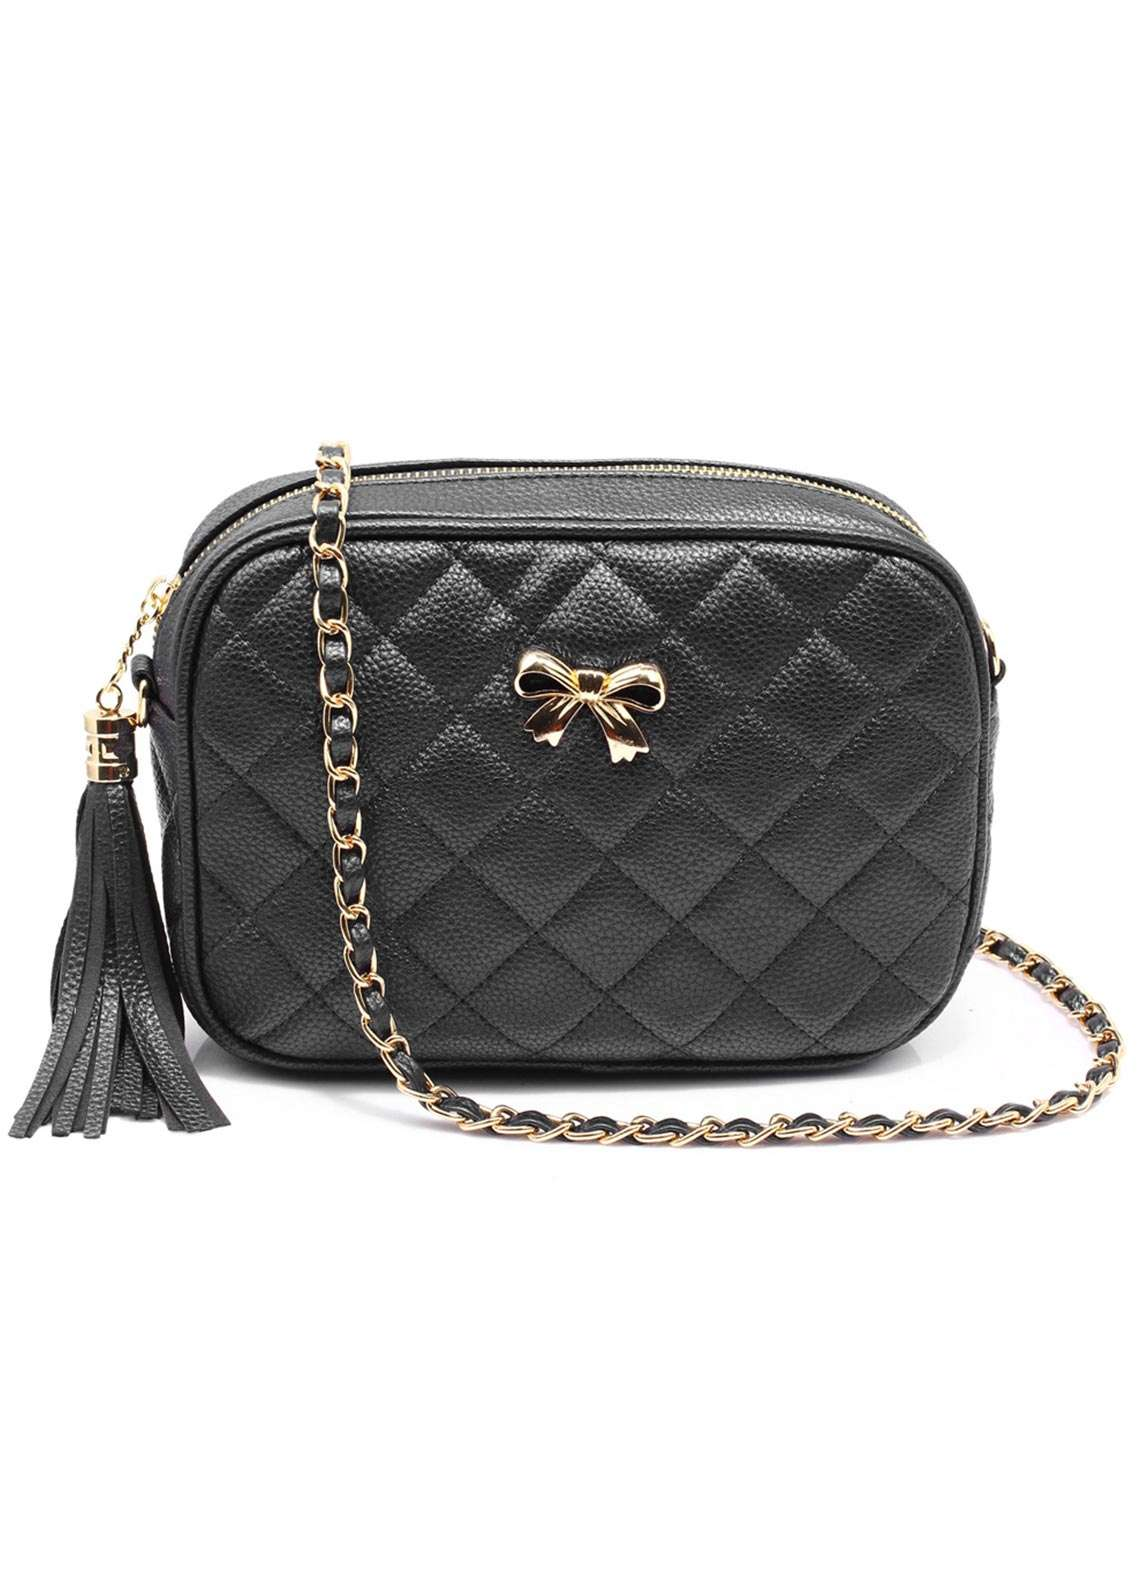 Anna Grace London Faux Leather Shoulder Bags for Women Black with Quilted Texture